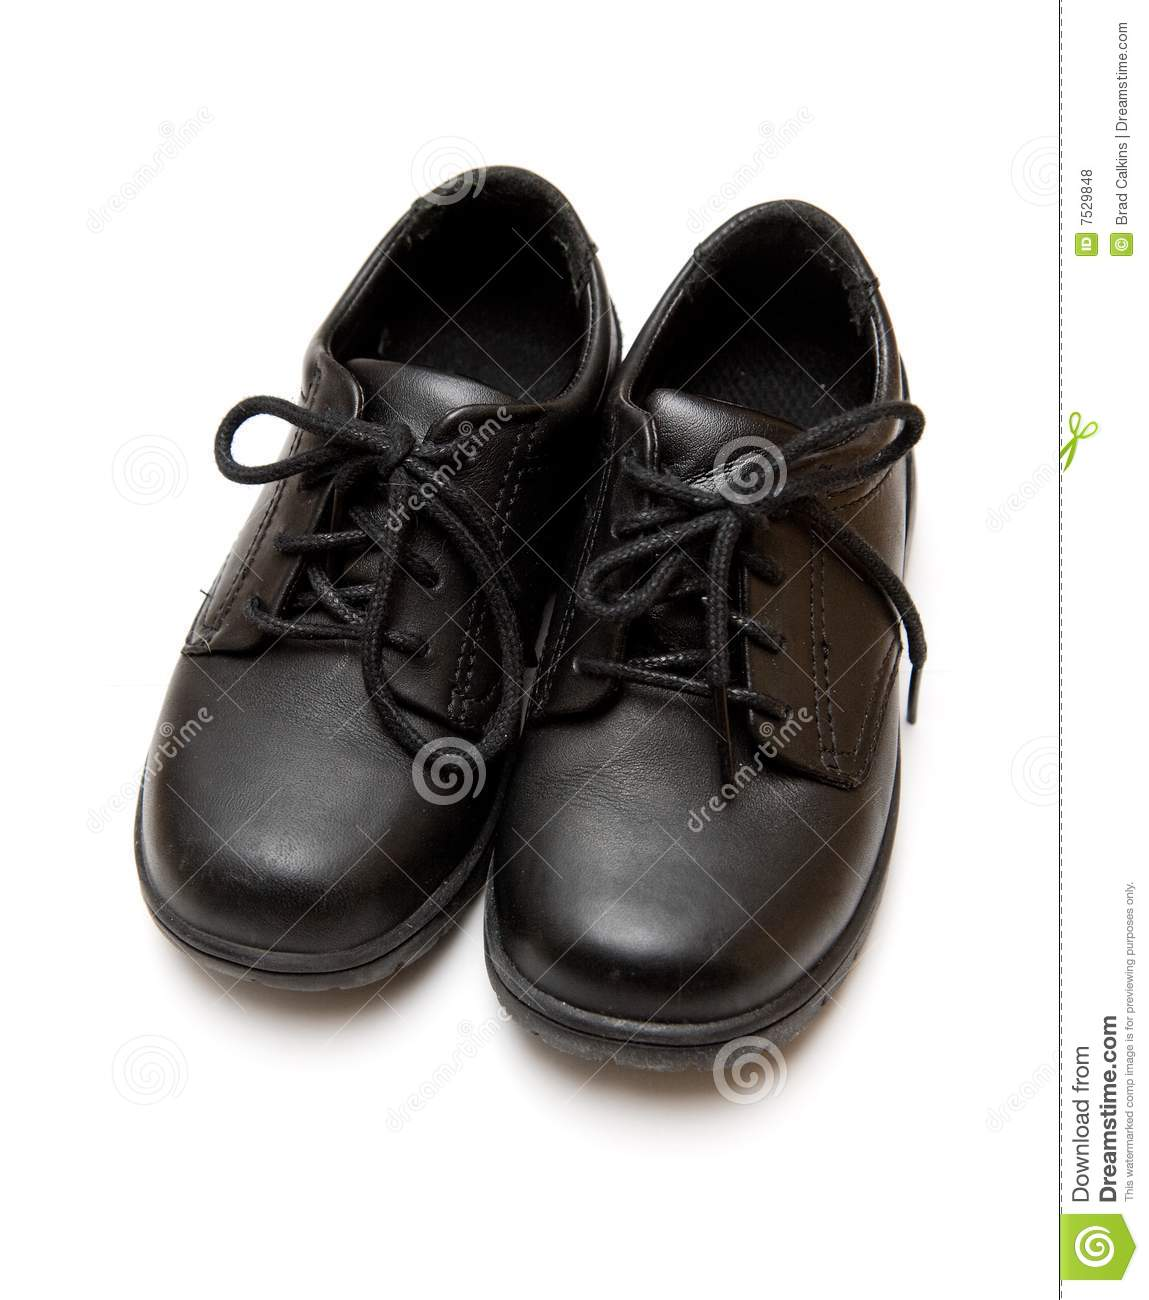 Boys Shoes Clipart Boys shoes